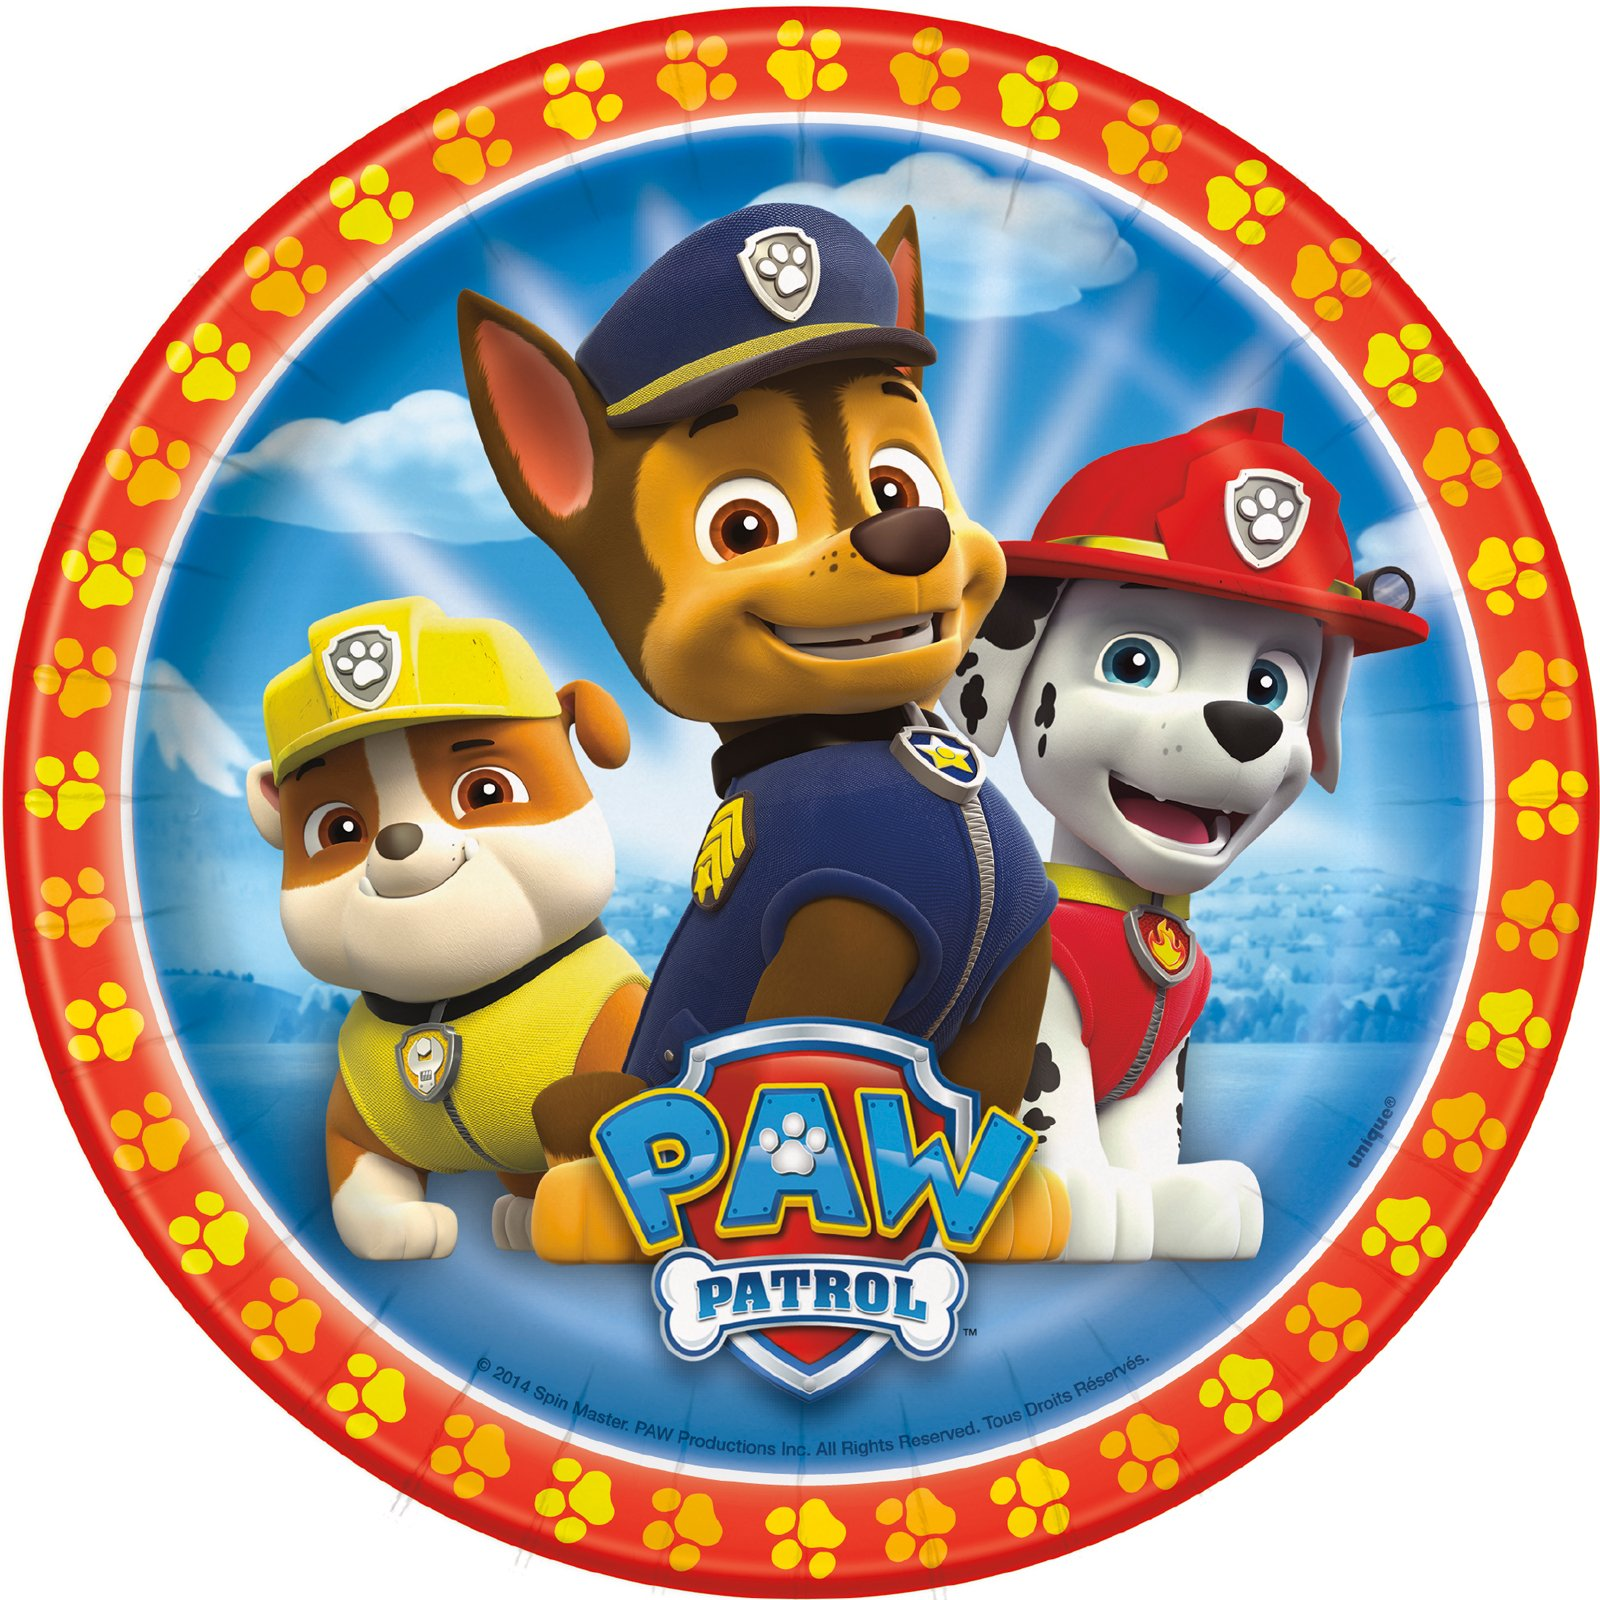 Paw Patrol wallpapers, TV Show, HQ Paw Patrol pictures ...